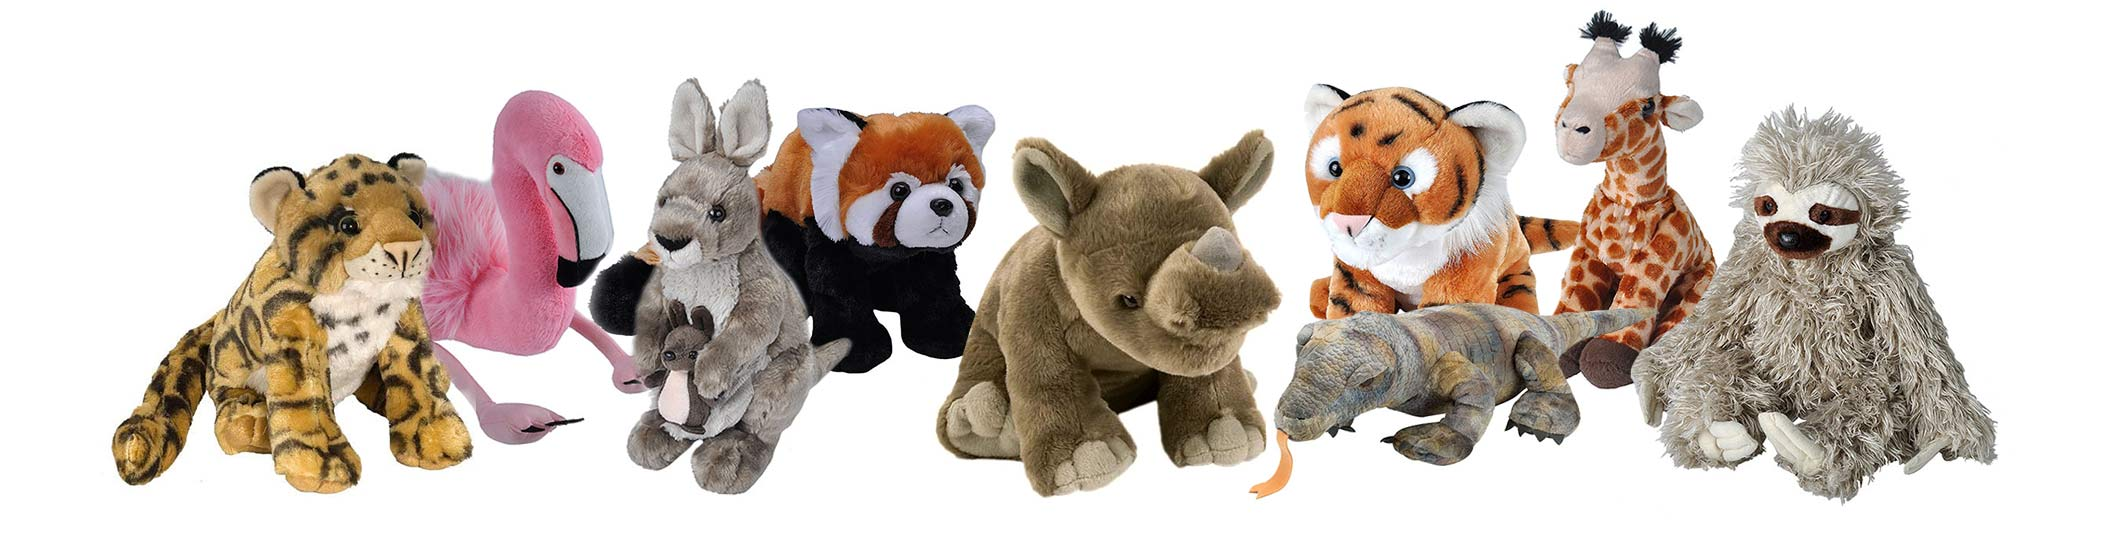 plush animals in a line